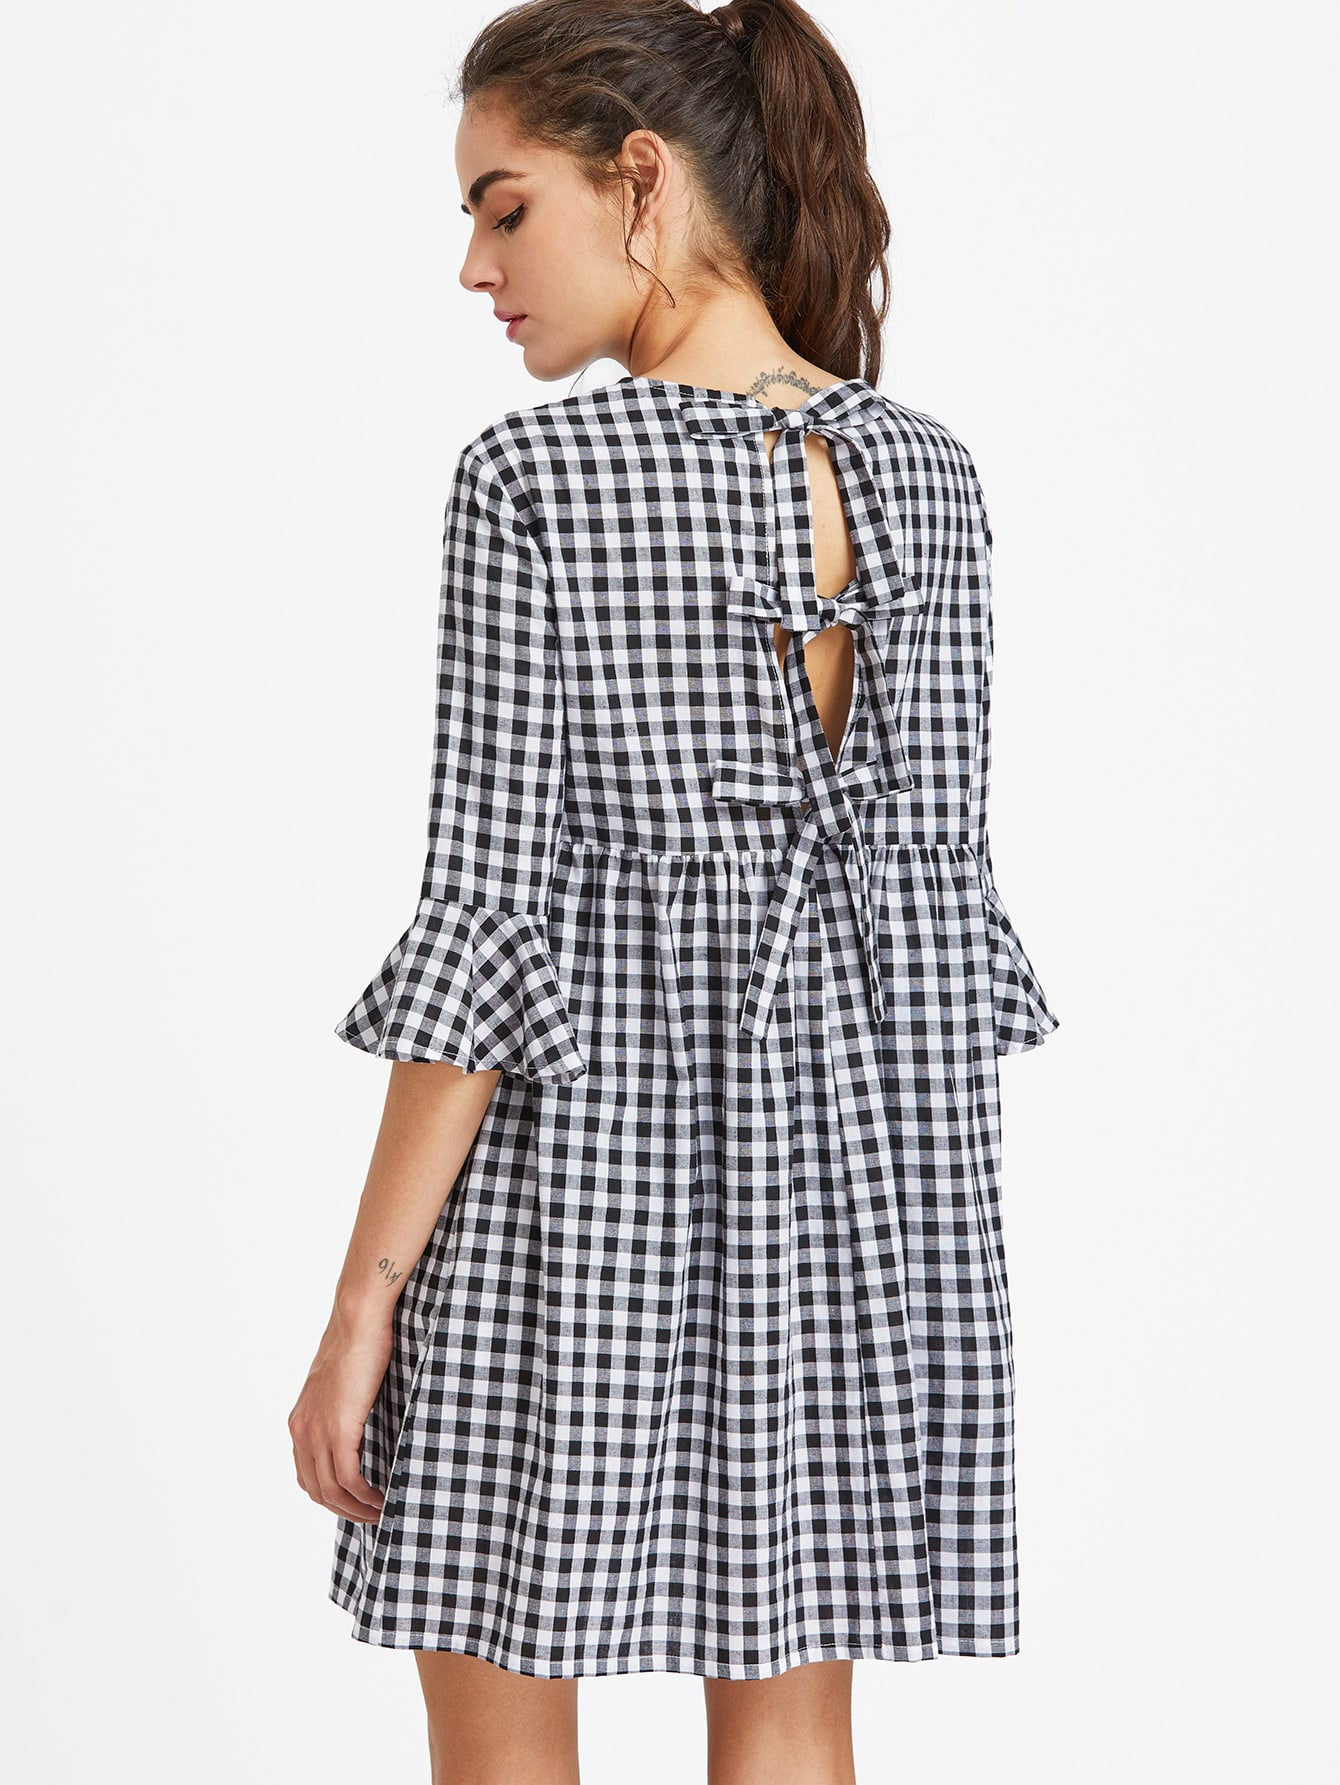 Bow Tie Open Back Fluted Sleeve High Waist Gingham Dress buy it diretly 5pcs lot rtd2482rd rtd2482d rtd2482 2482 qfp128 best quality90 days warranty